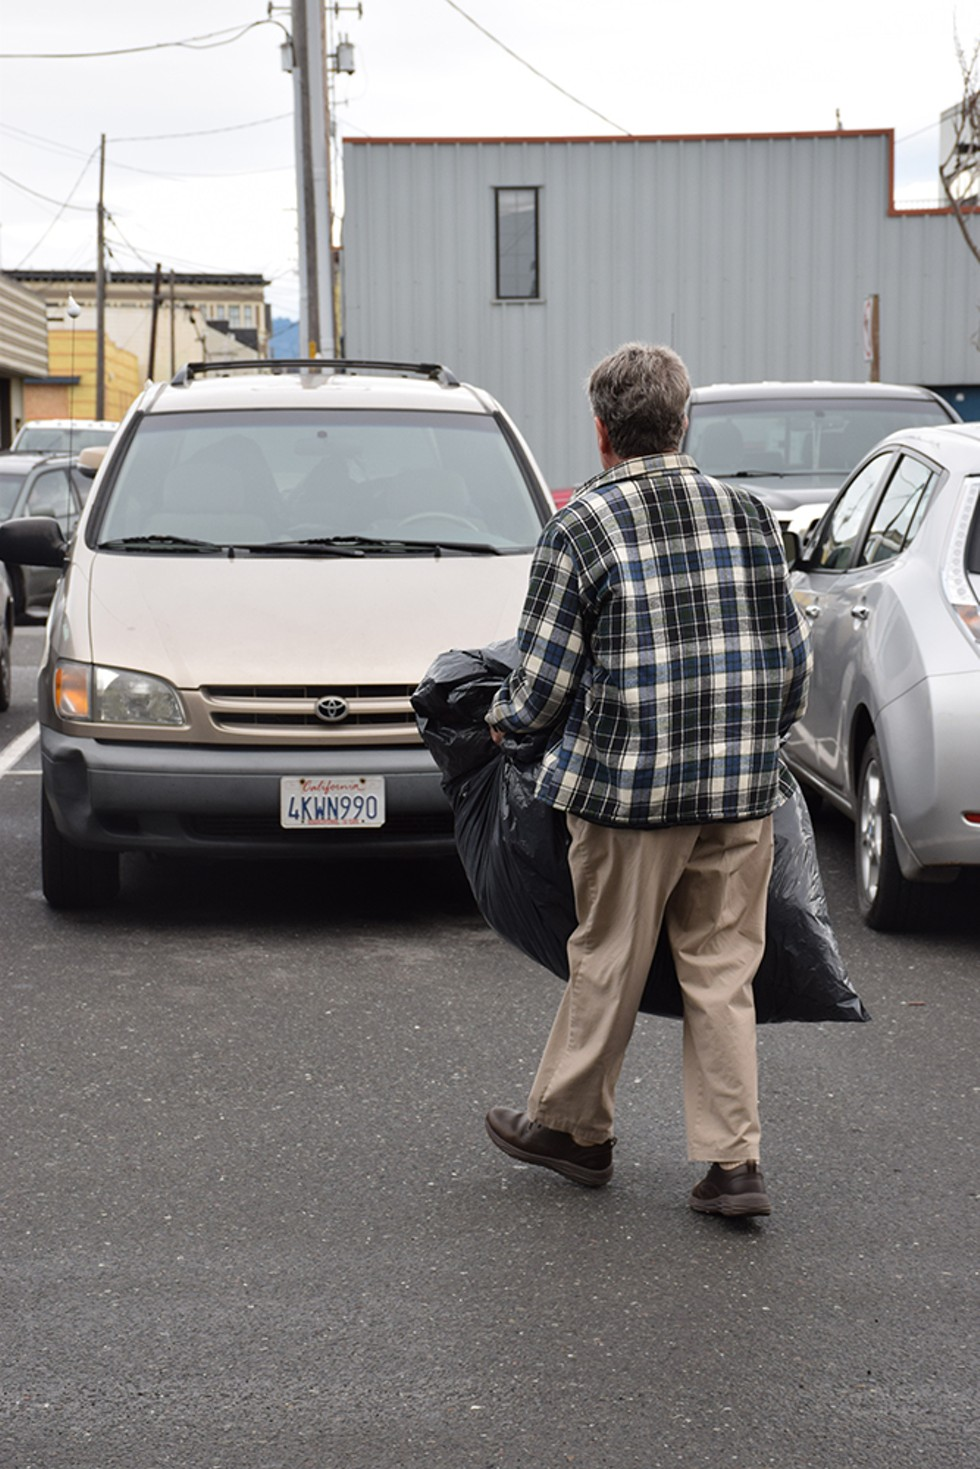 Robert Lohn with a garbage bag full of donated coats picked up from the North Coast Co-op in Eureka - PHOTO BY THADEUS GREENSON